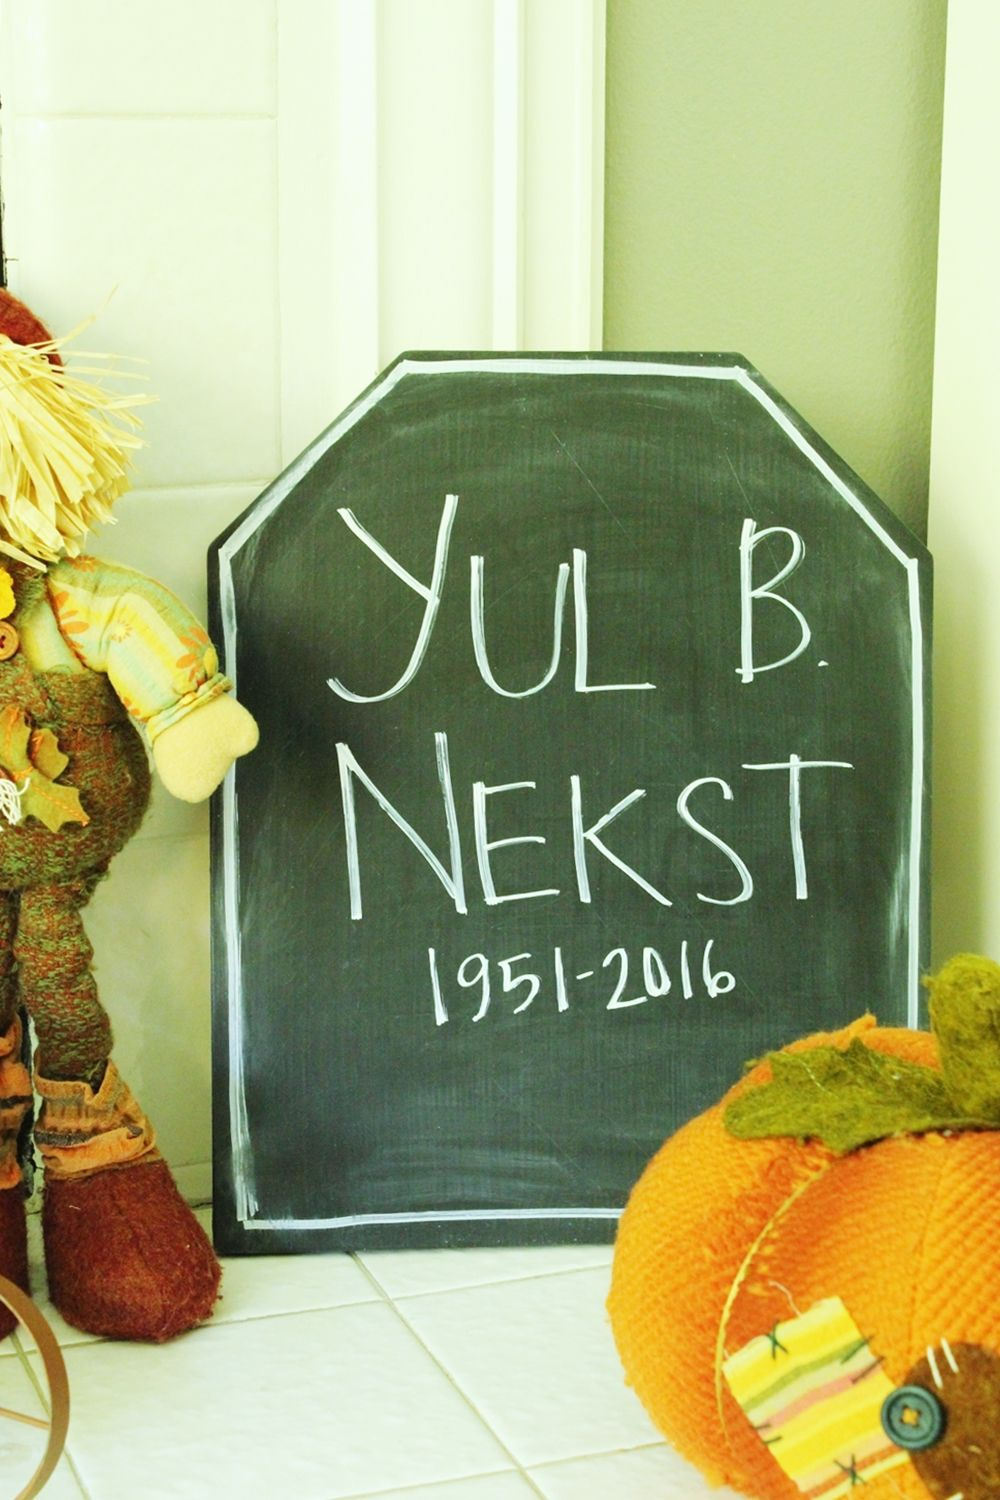 DIY Chalkboard Tombstone - clever tombstone names